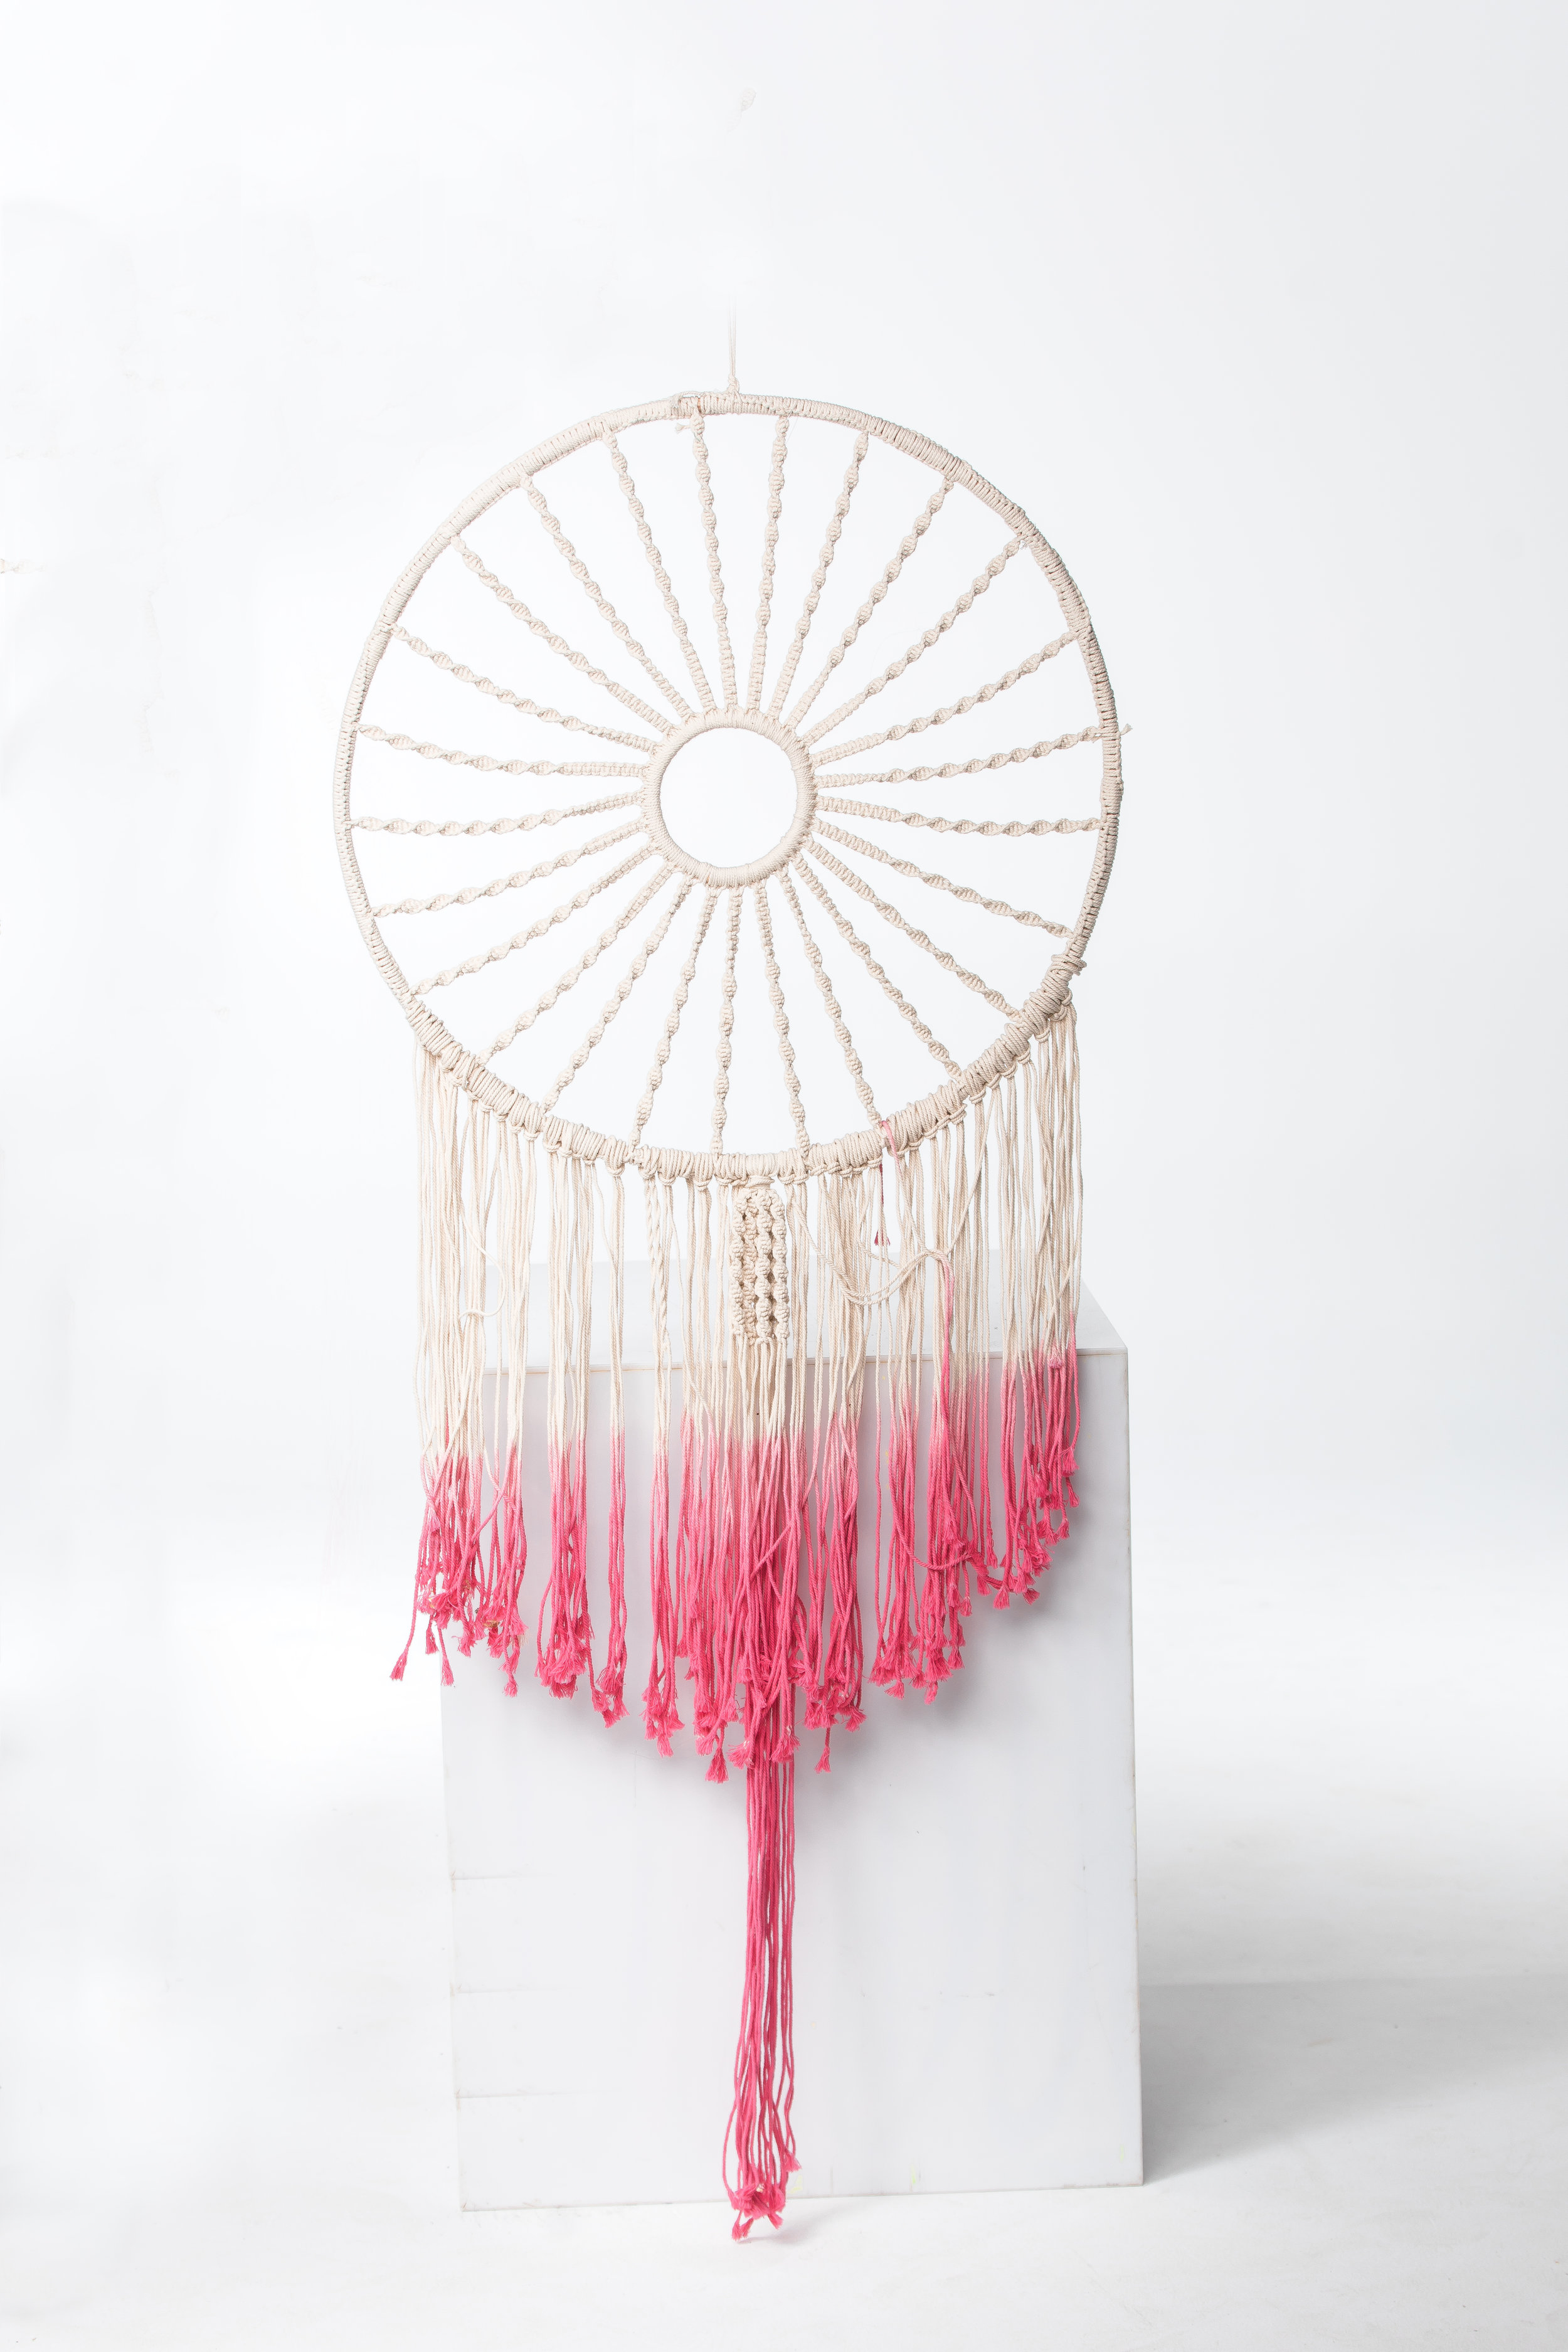 GIANT DREAMCATCHER (CREAM + PINK)